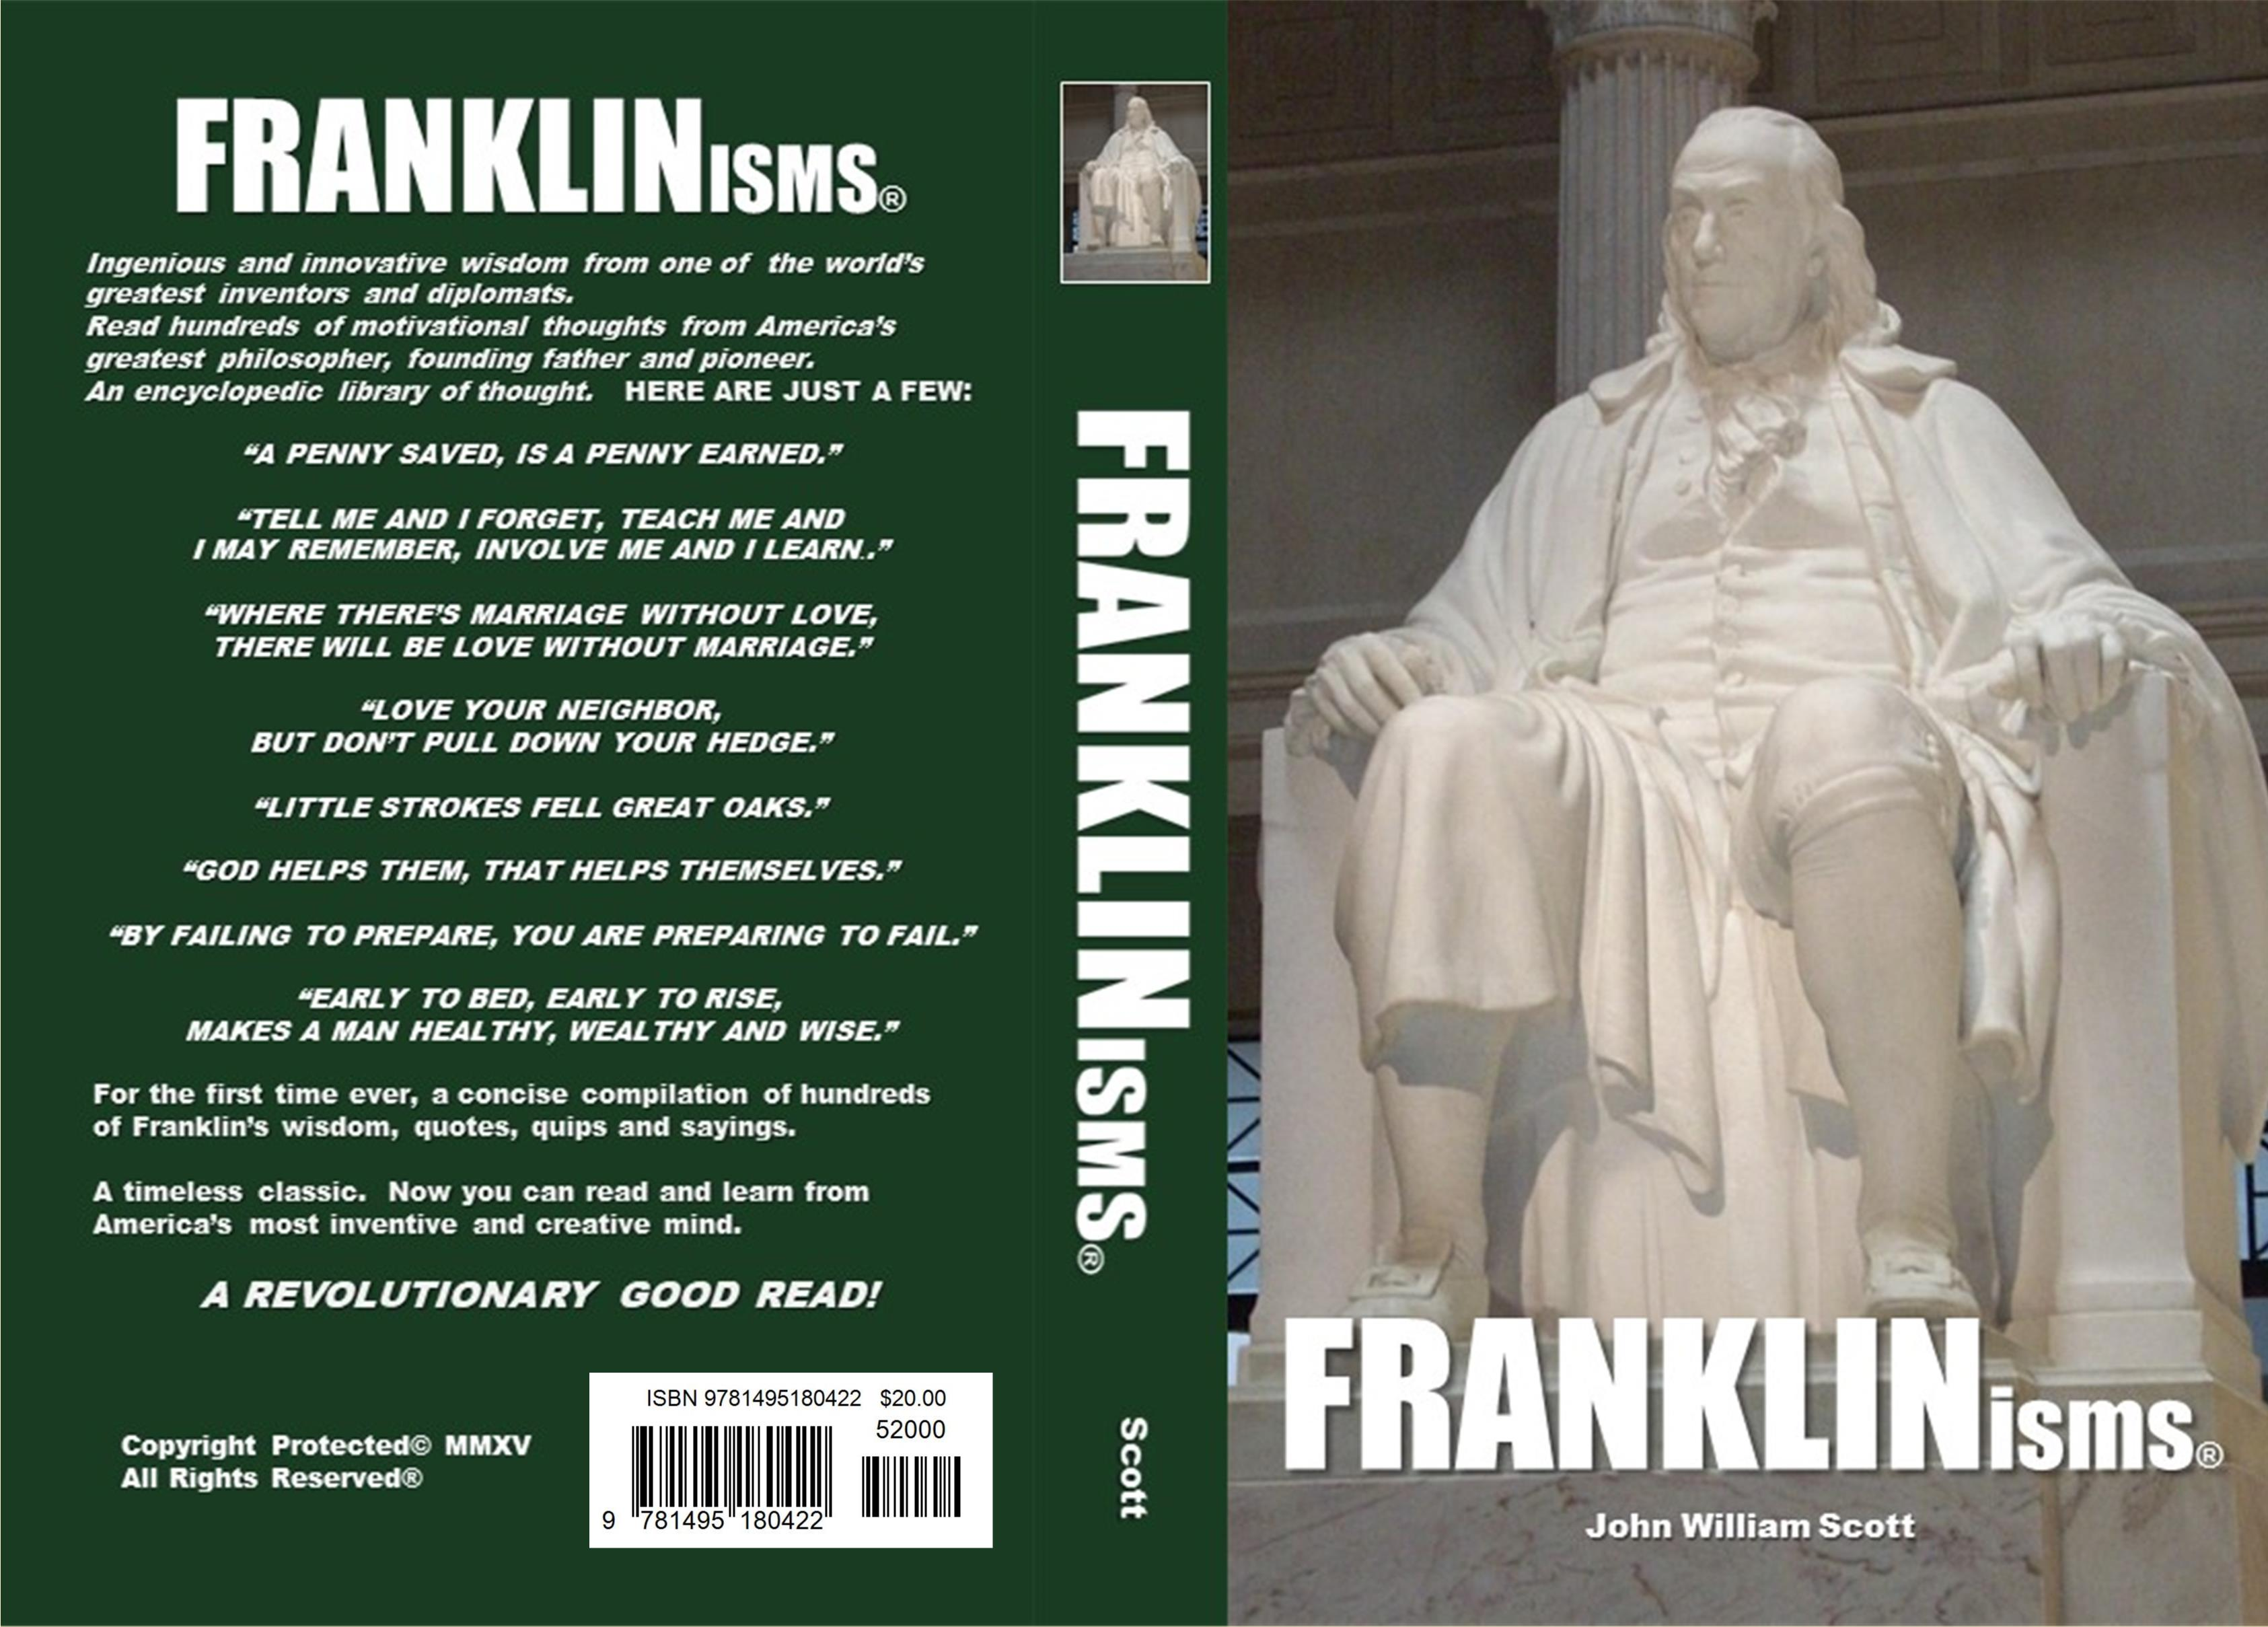 FRANKLINisms cover image